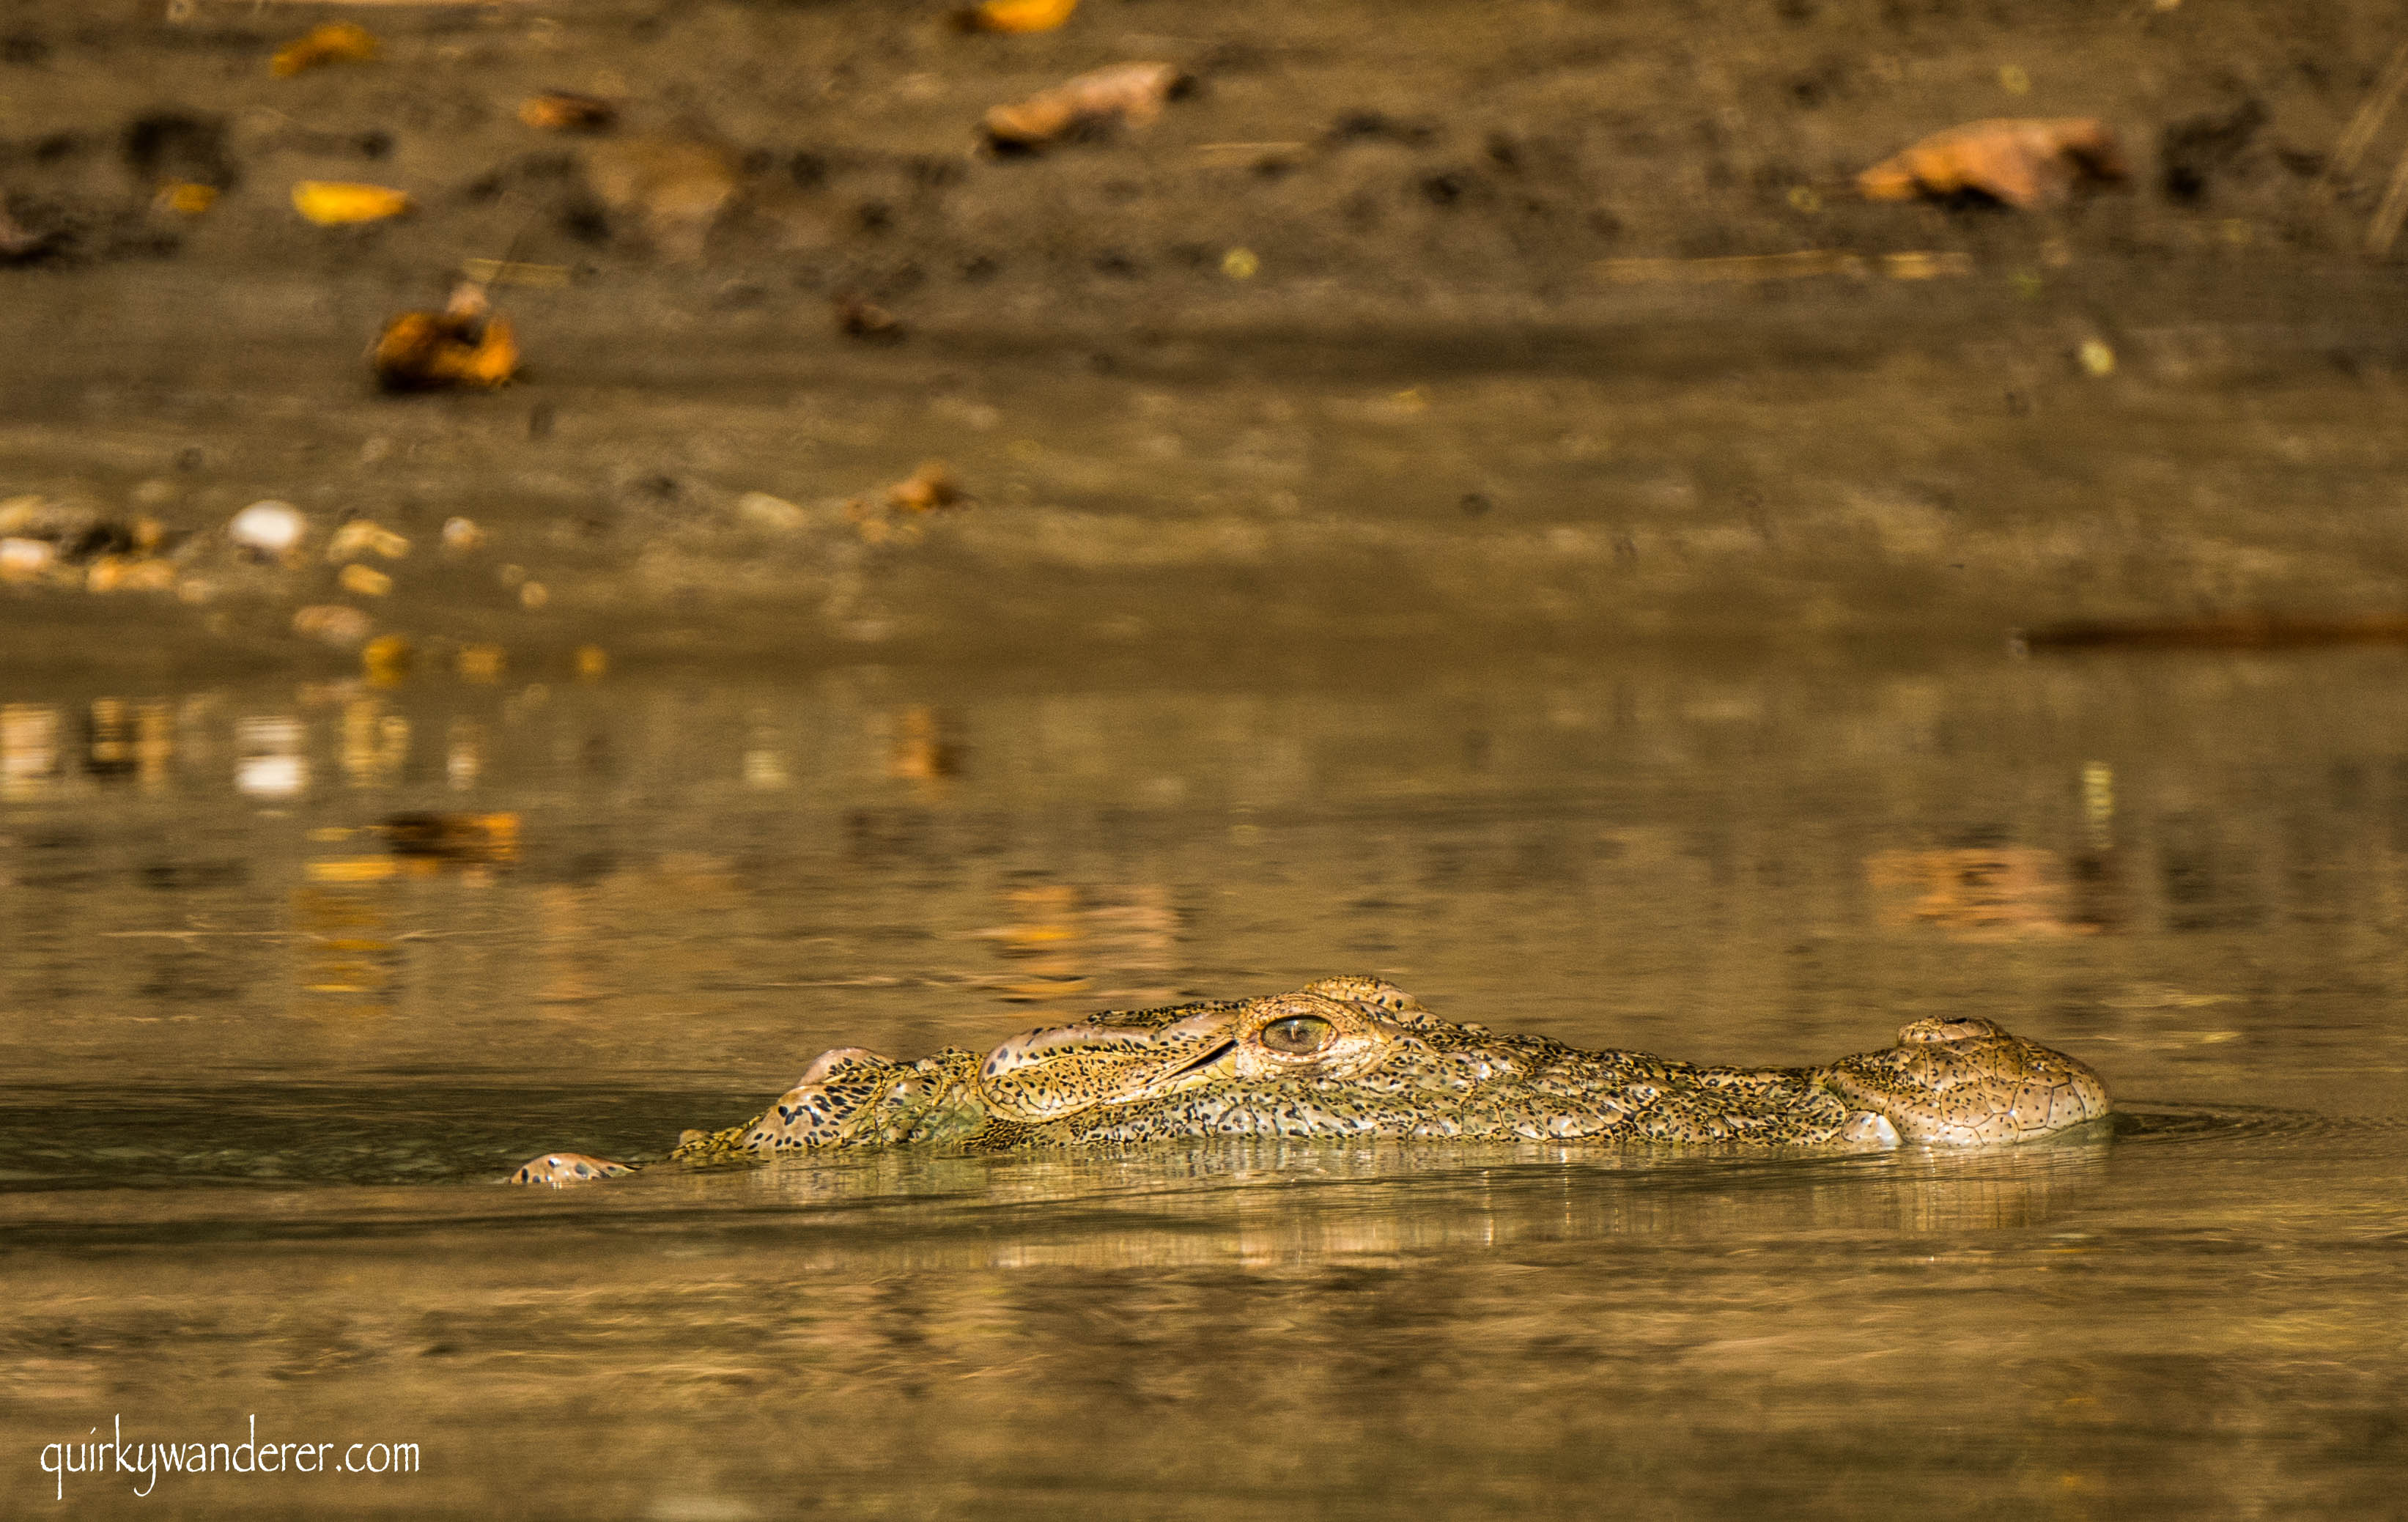 crocodiles in the Asia